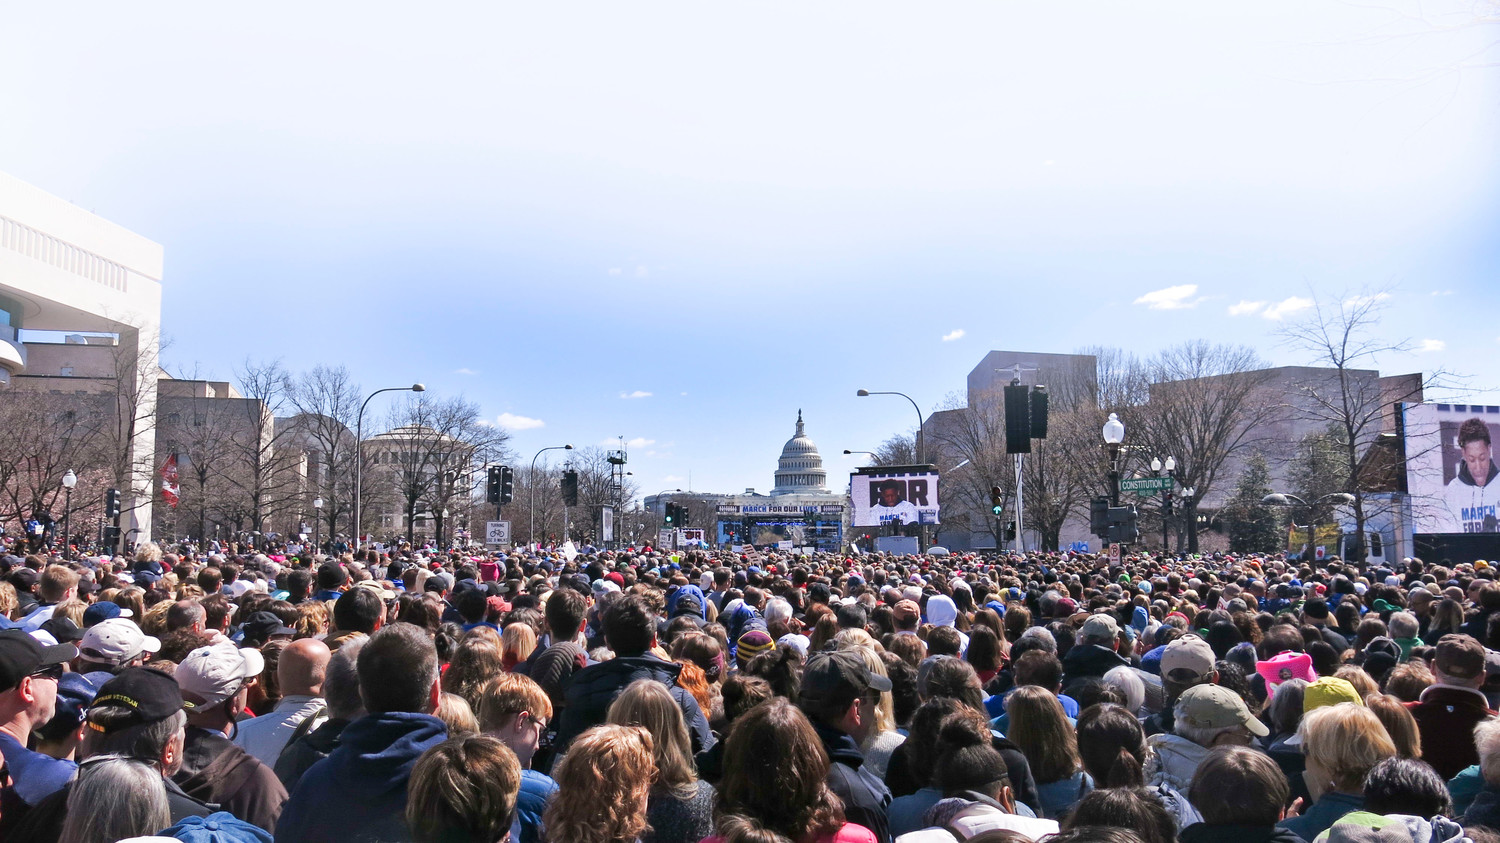 Constitution Avenue in Washington was filled with protesters during the national March for Our Lives rally on March 24.